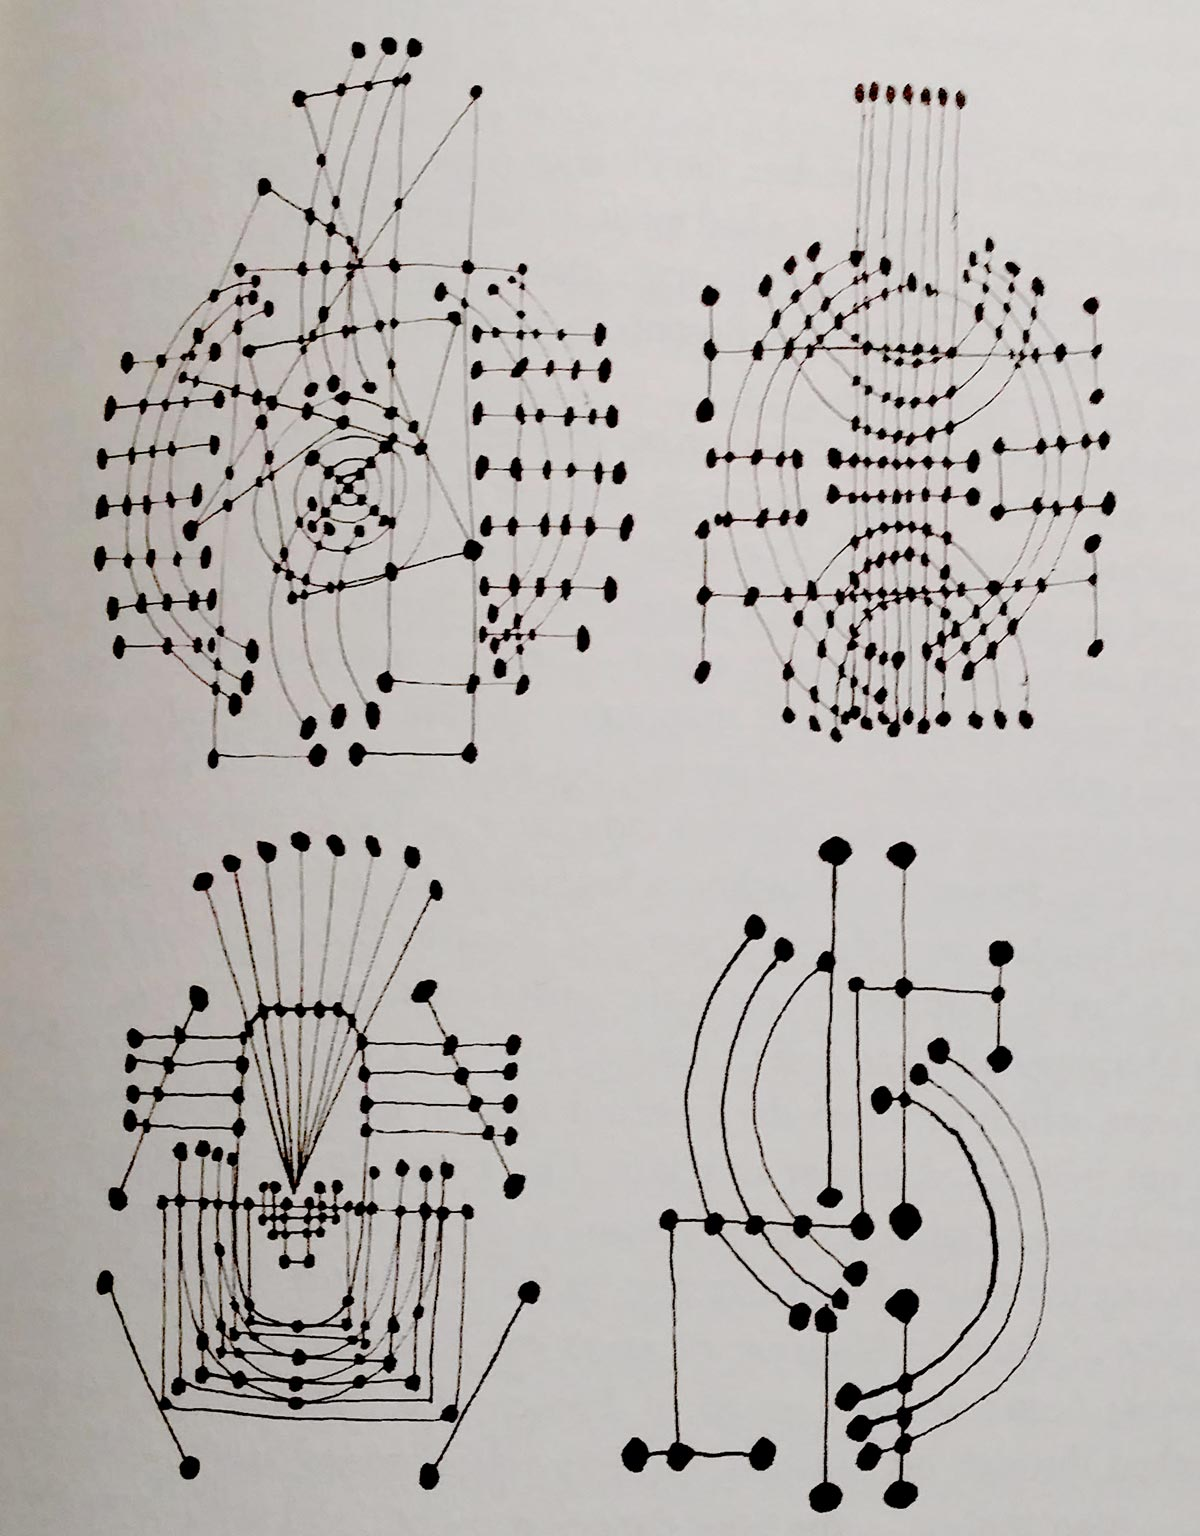 constructing abstraction  pablo picasso u2019s constellation drawings  1924   u2013 socks